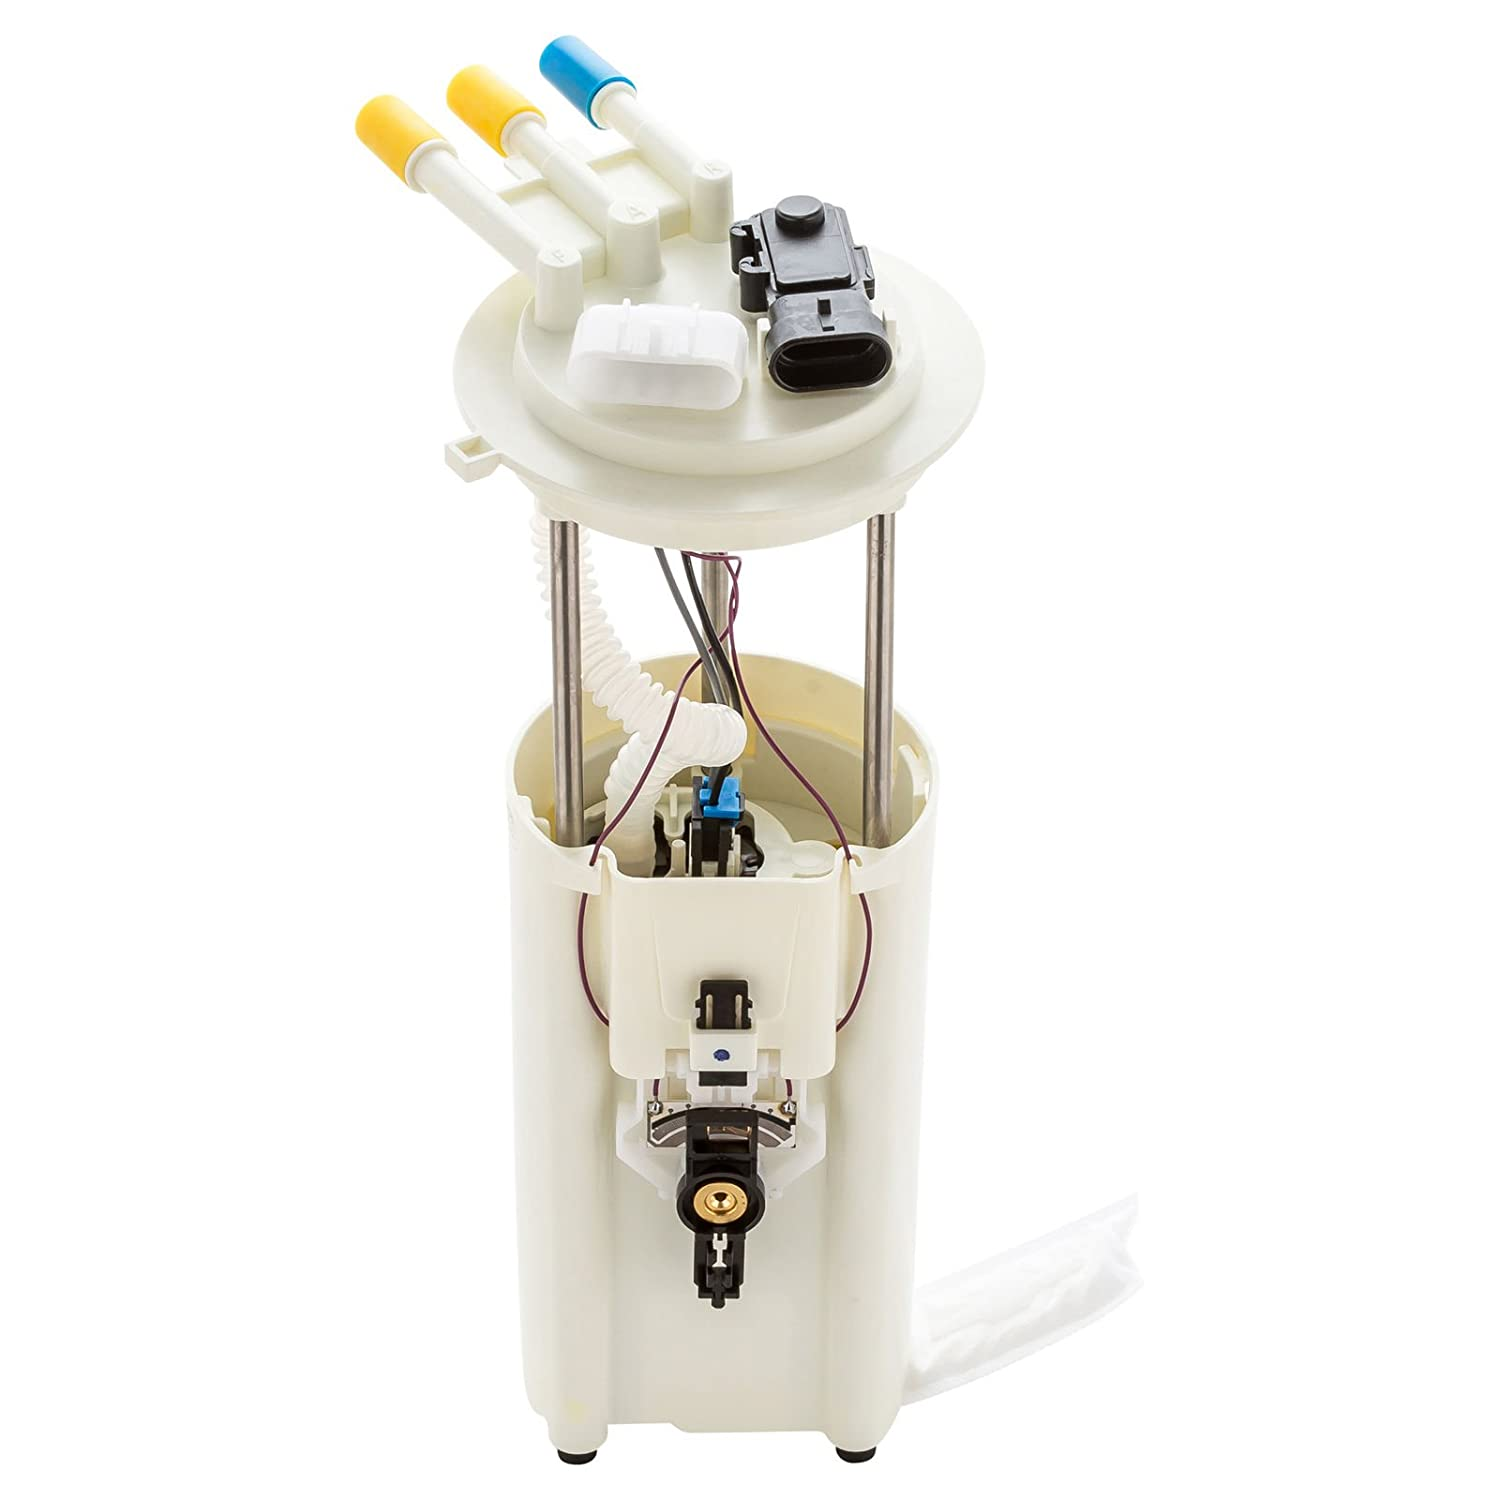 Amazon.com: Fuel Pump Assembly for Chevy S10 Blazer GMC S15 Jimmy 4 Dr fits  E3992M 25176789: Automotive